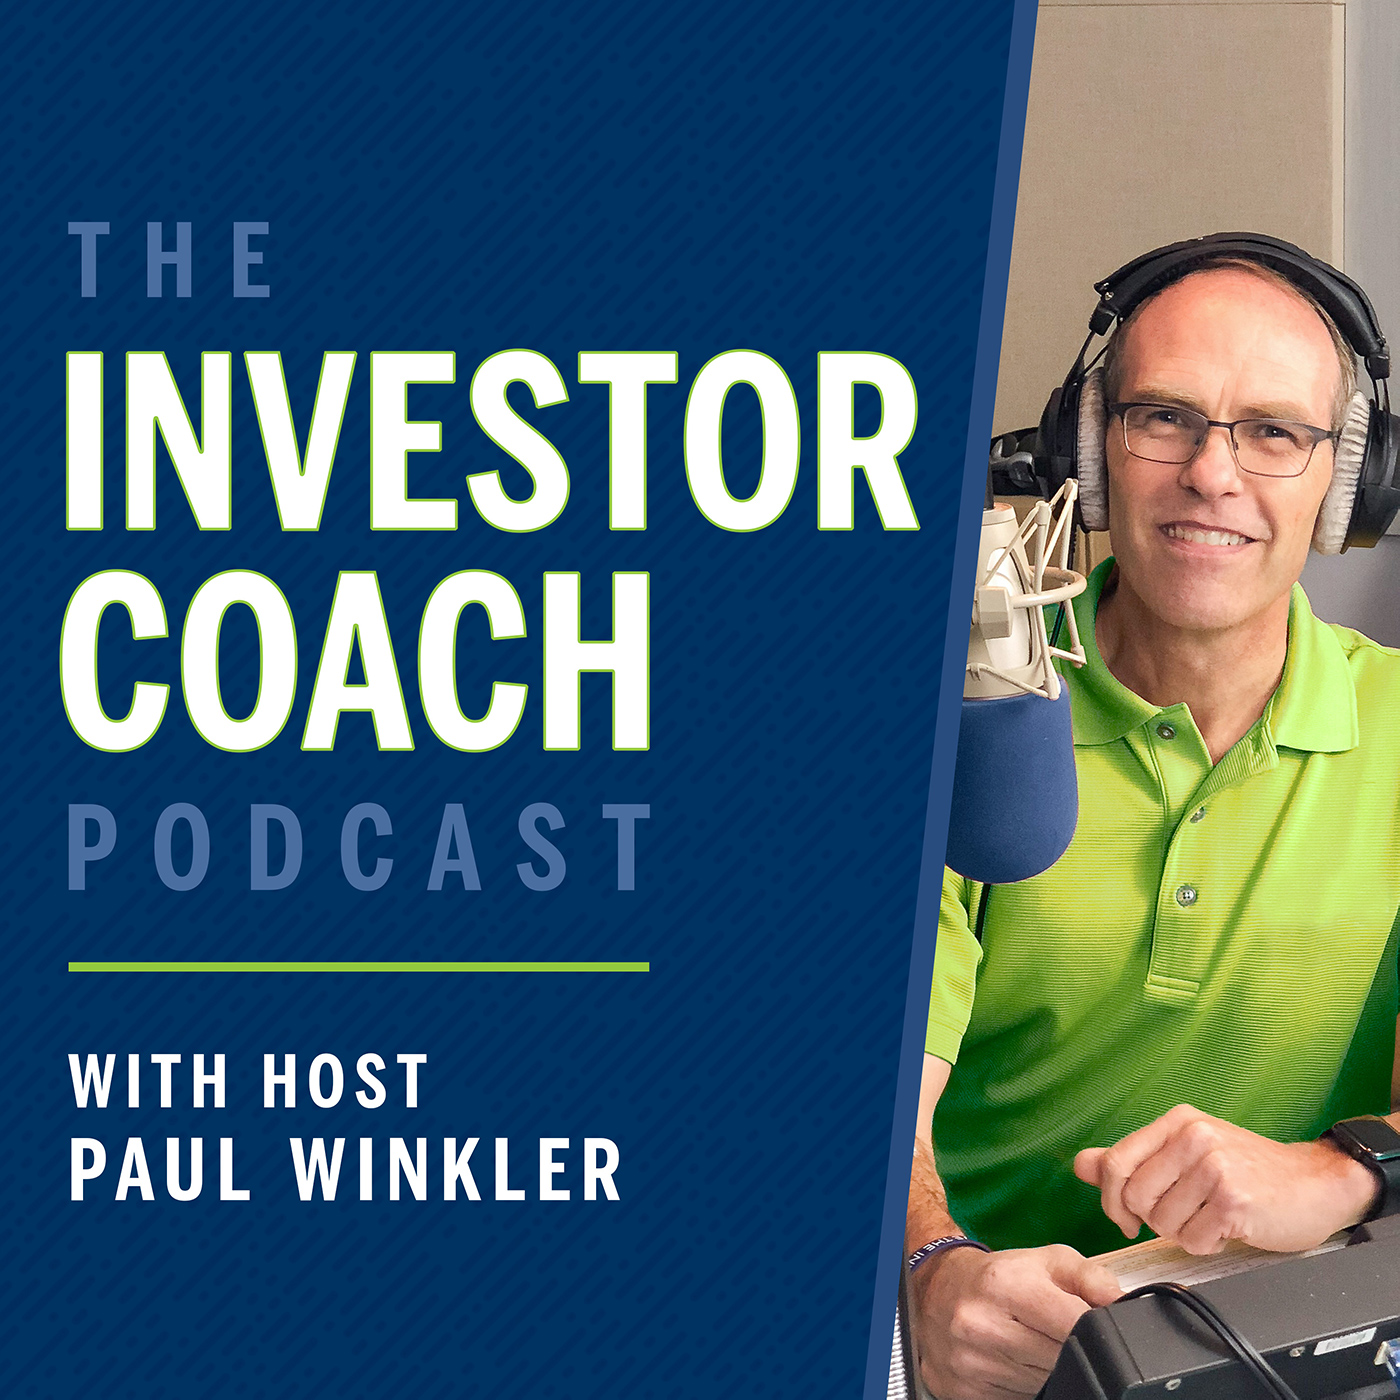 The Investor Coach Podcast with Paul Winkler